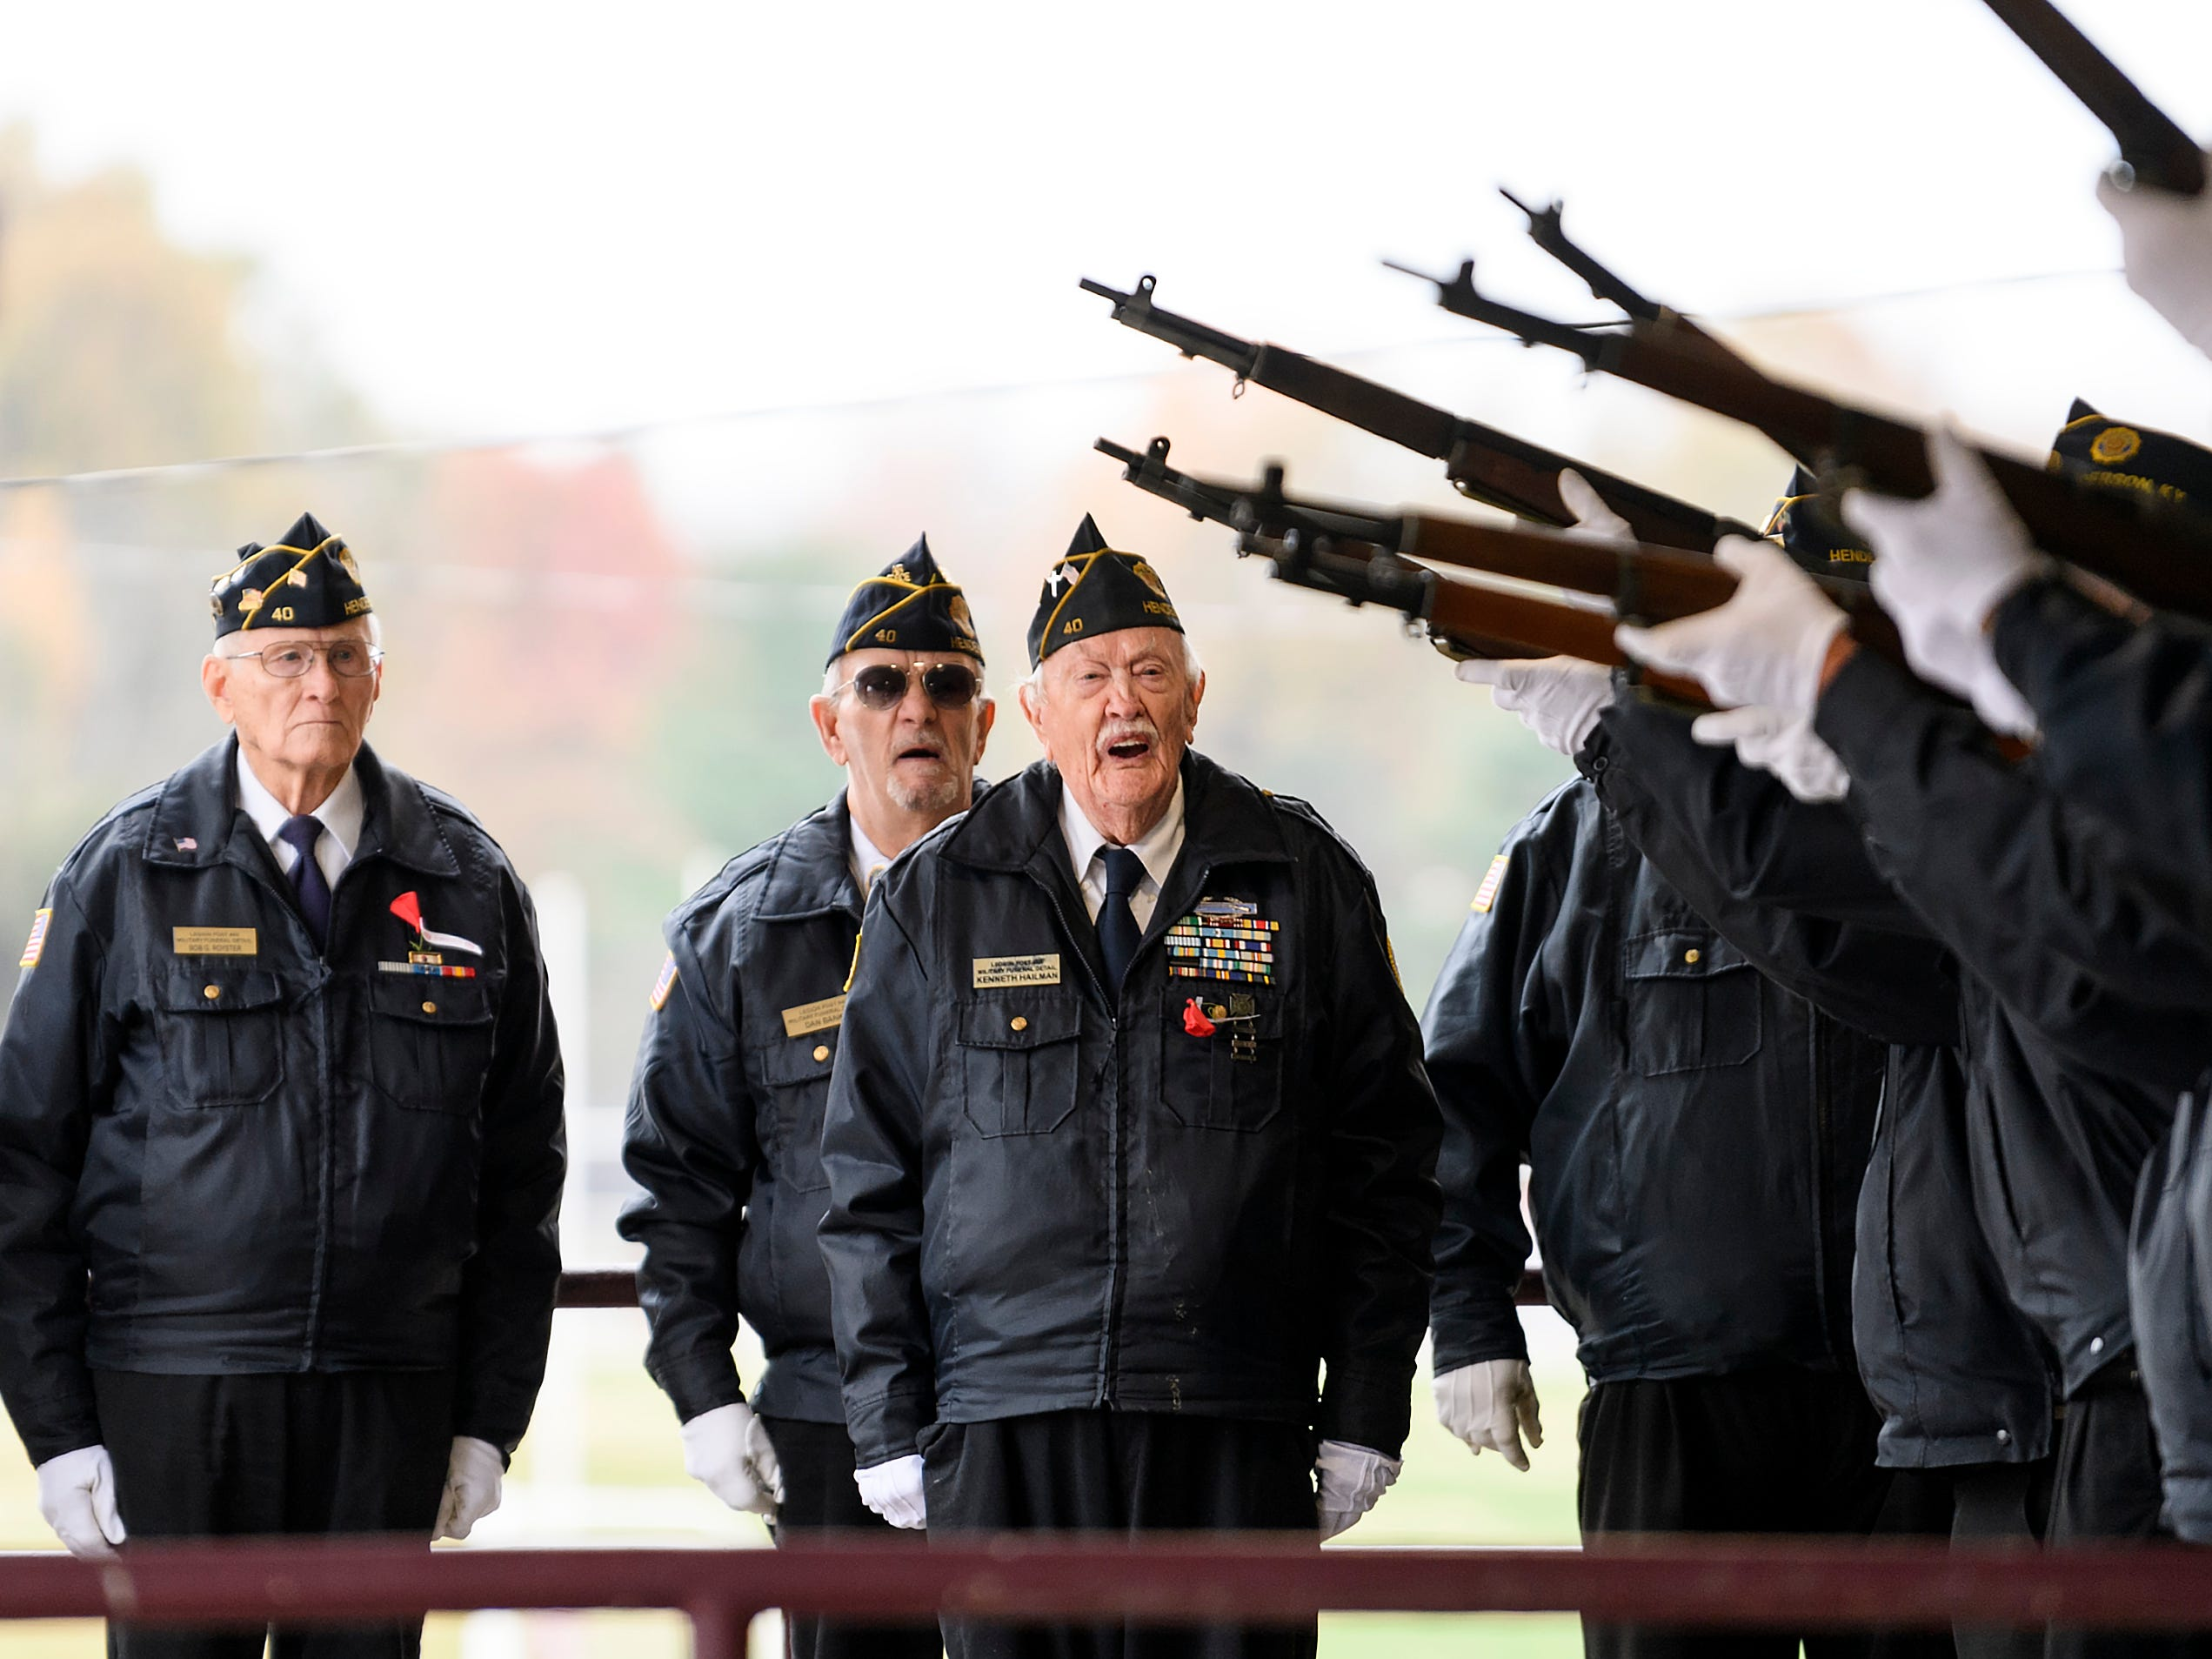 The Henderson American Legion Worsham Post 40 Honor Guard performs a 21-gun salute during the 38th annual Veteran's Day program at South Middle School in Henderson, Ky., Monday, Nov. 12, 2018.